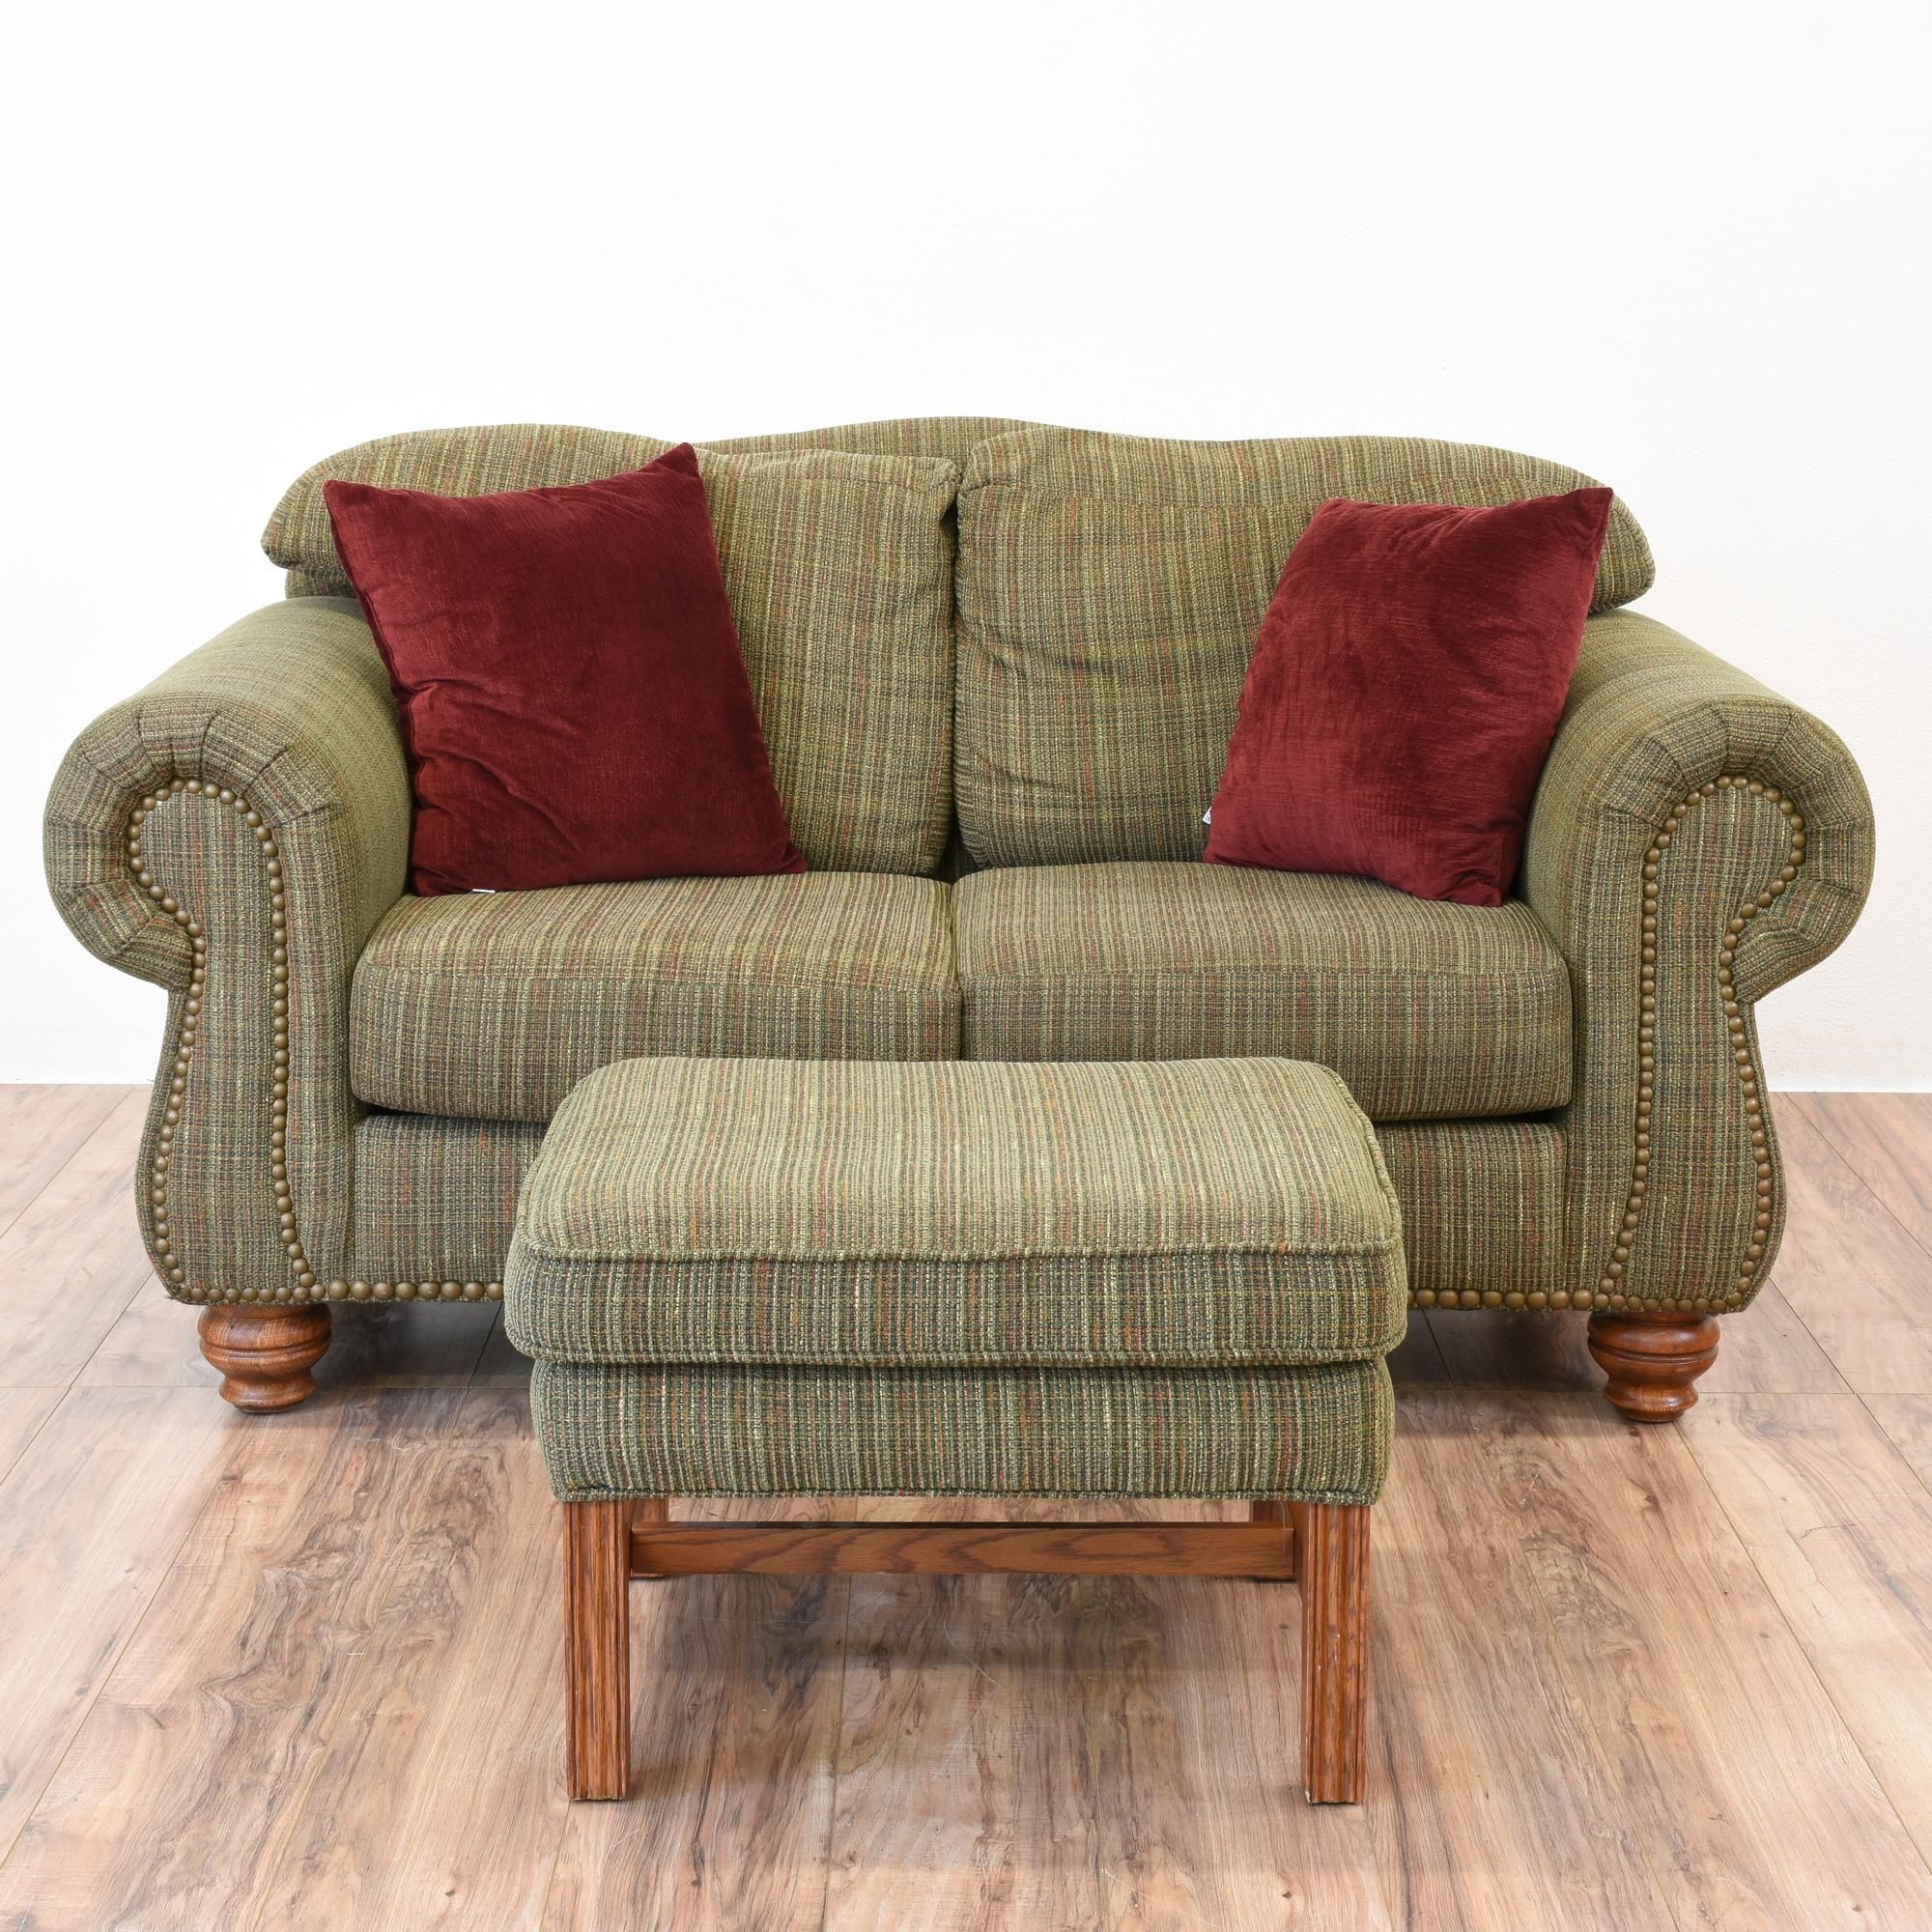 This Loveseat And Ottoman Are Upholstered In A Durable